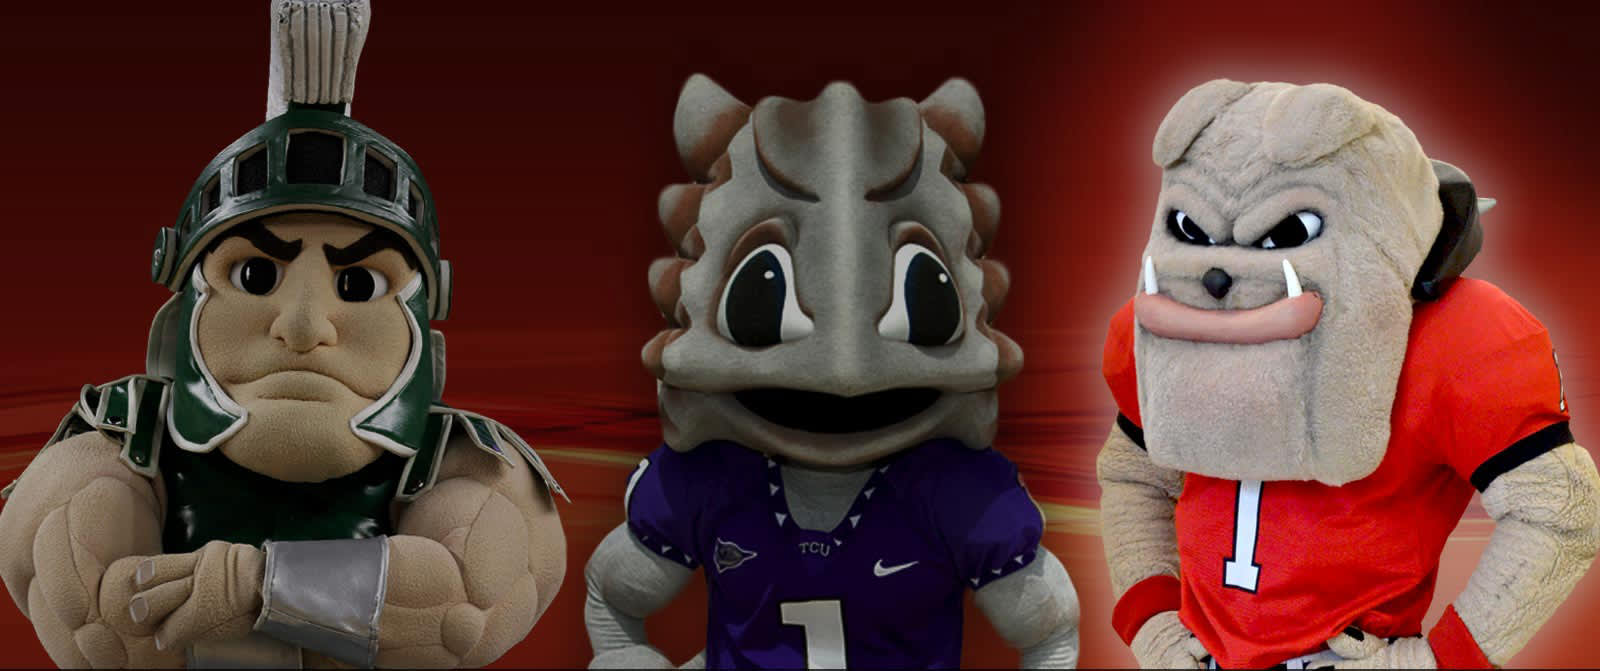 Image of three college mascots, with the middle and lovable mascot highlighted